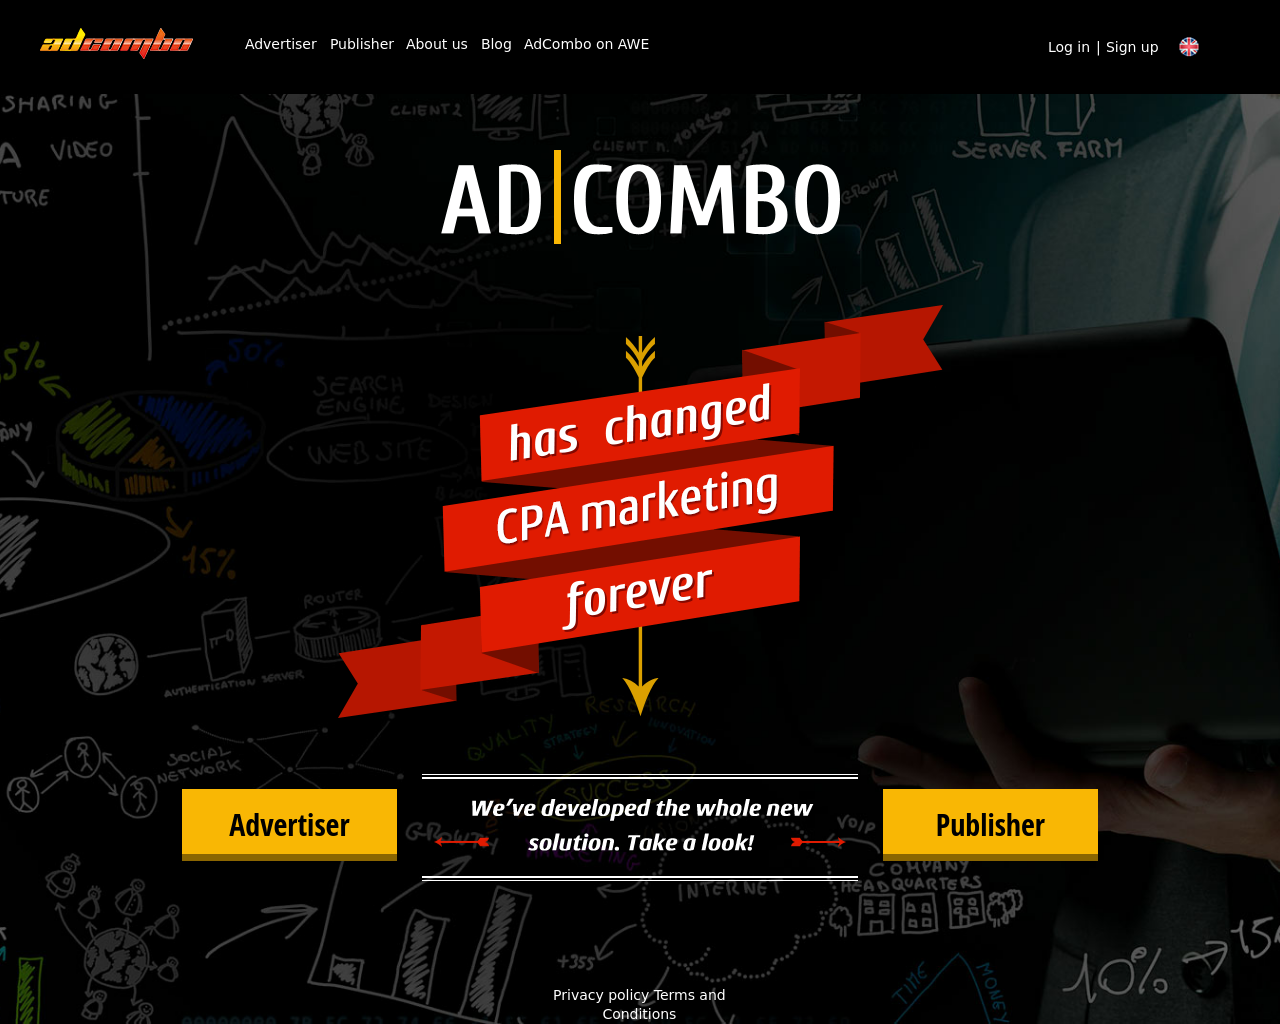 Adcombo-Advertising-Reviews-Pricing